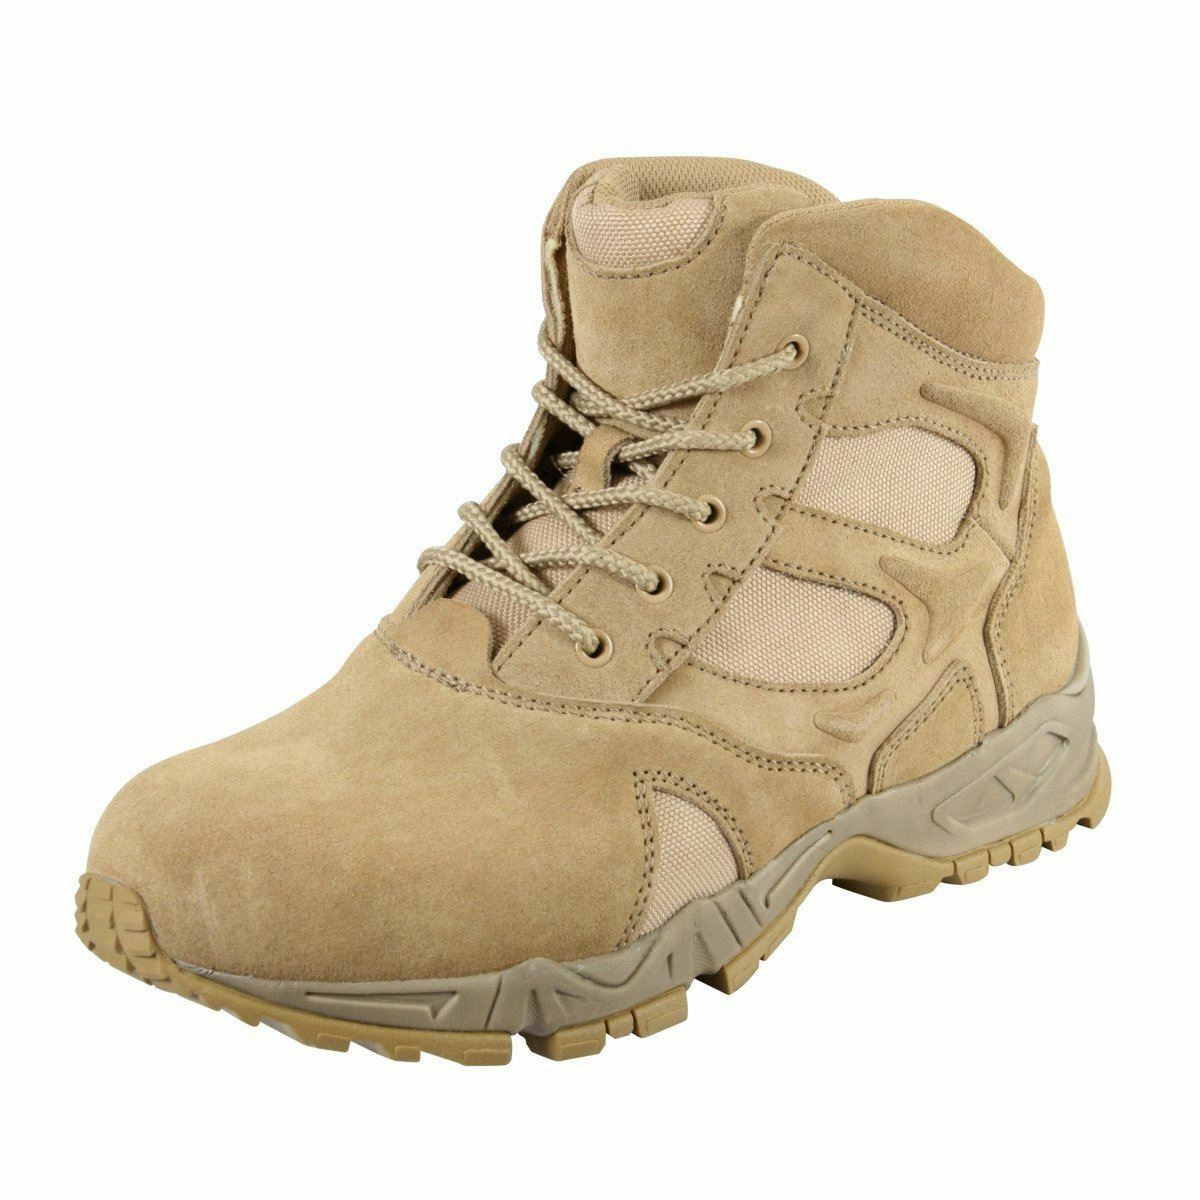 redhco 6 Inch Forced Entry Deployment Boot -Desert Tan - 5368